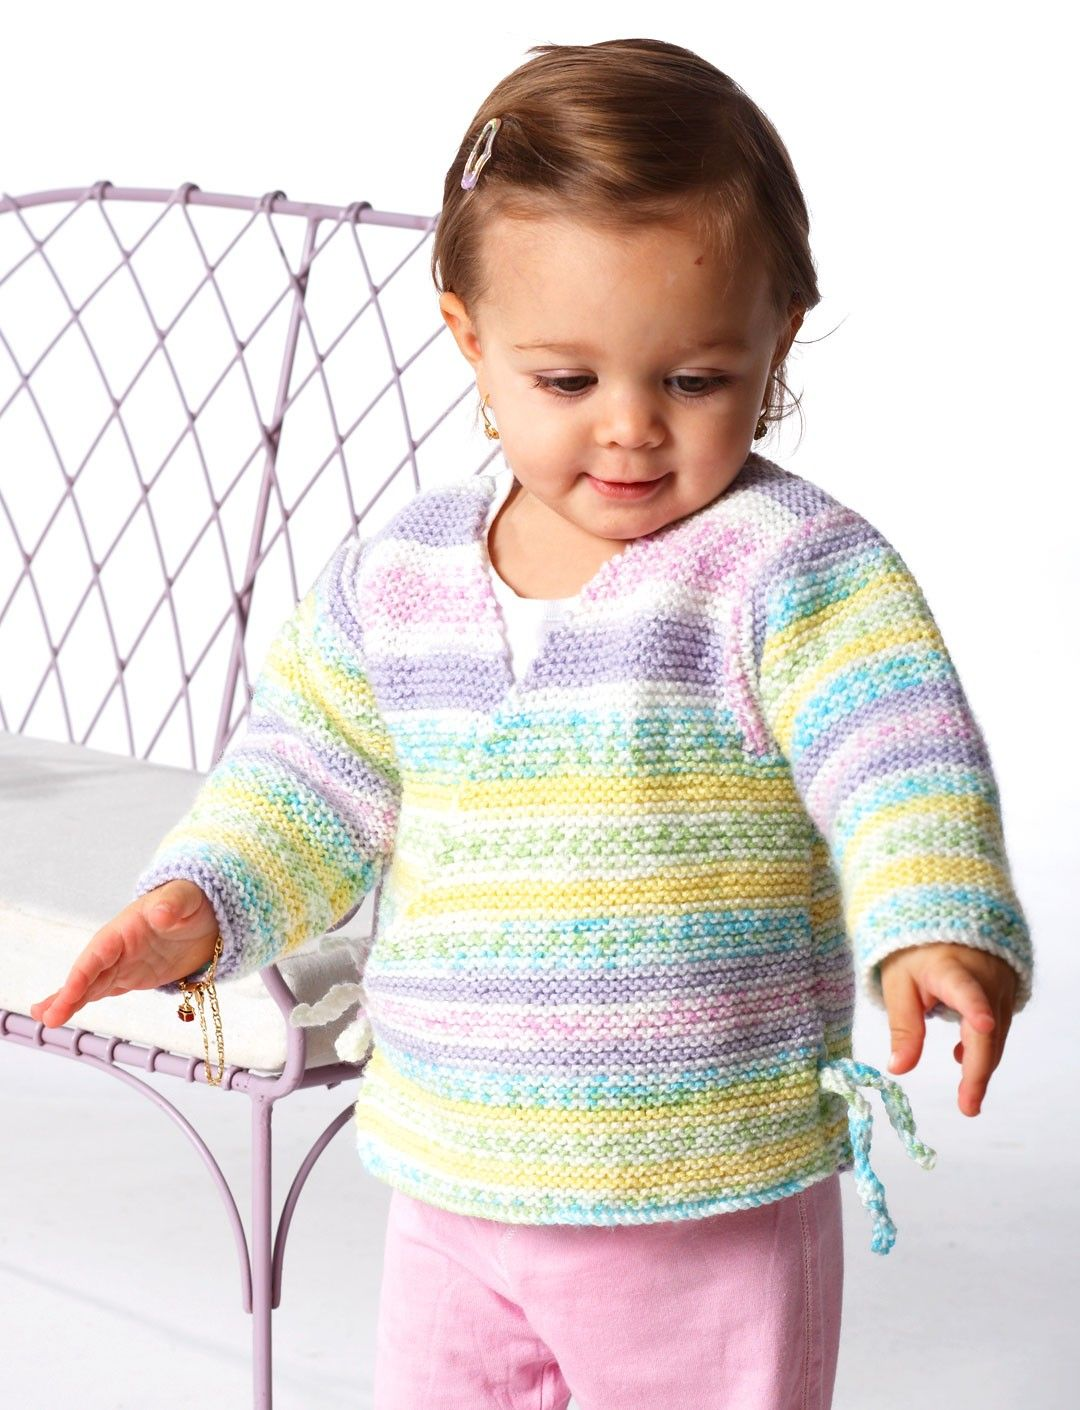 Garter stitch kimono baby knitting patterns pinterest garter free pattern sweet little kimono is a dream to in easy garter stitch great project for beginning knitters bankloansurffo Images